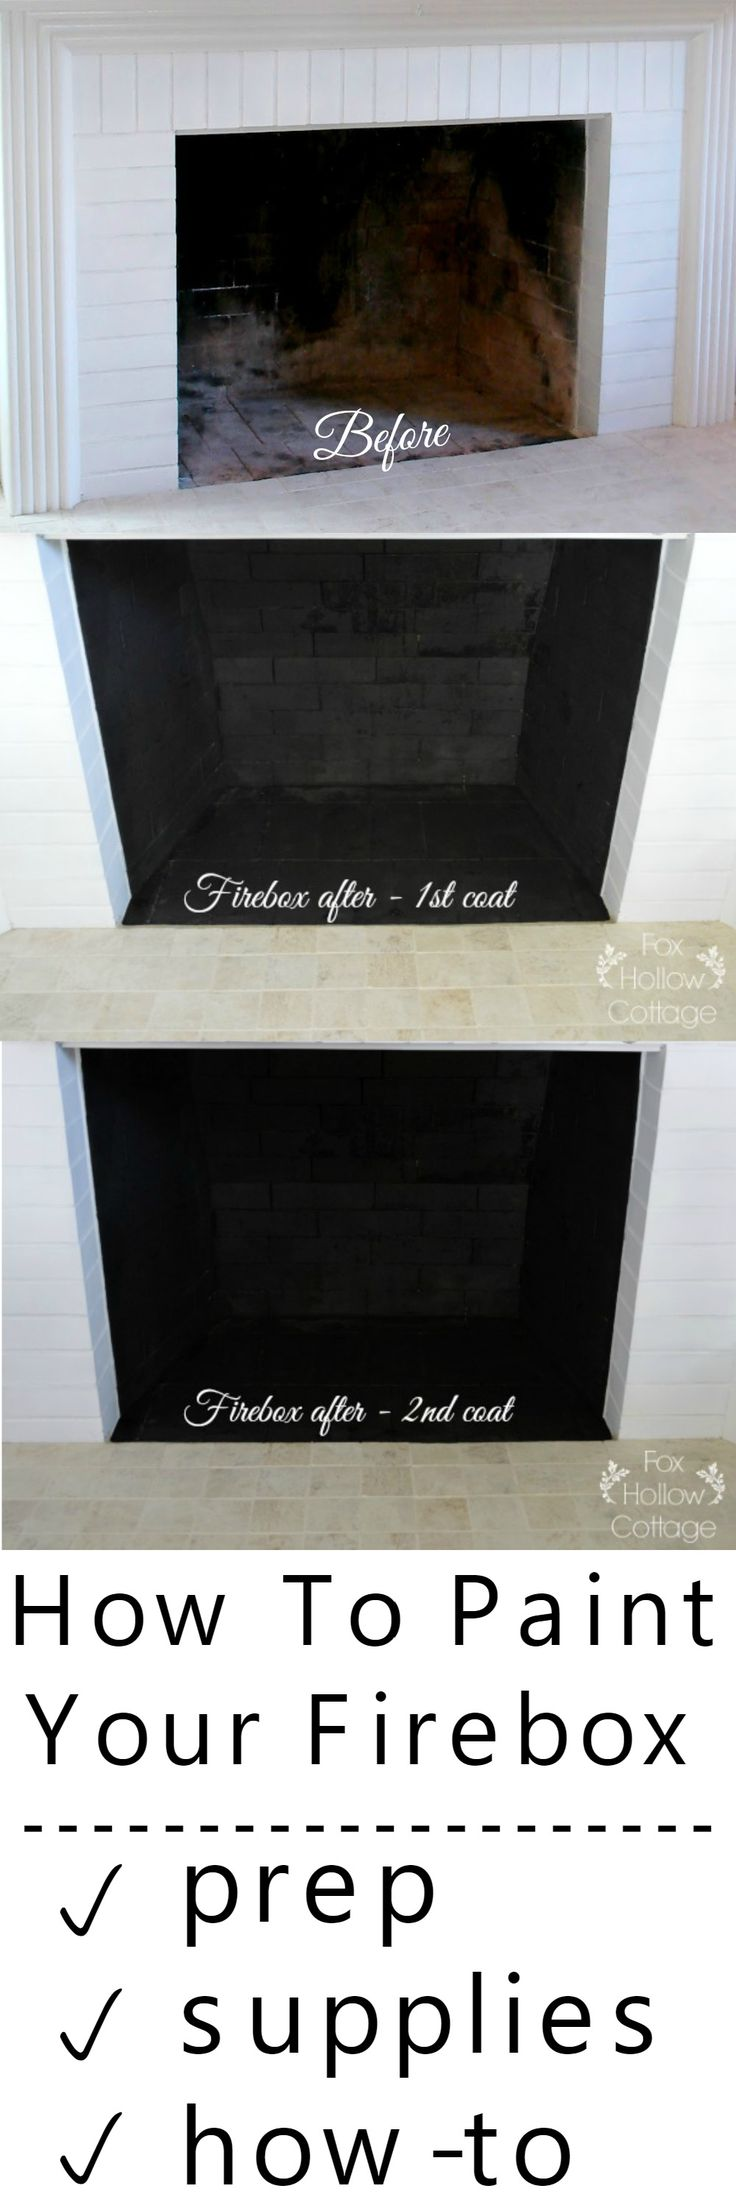 Make your fireplace look like new! How to paint a firebox. DIY home improvement.